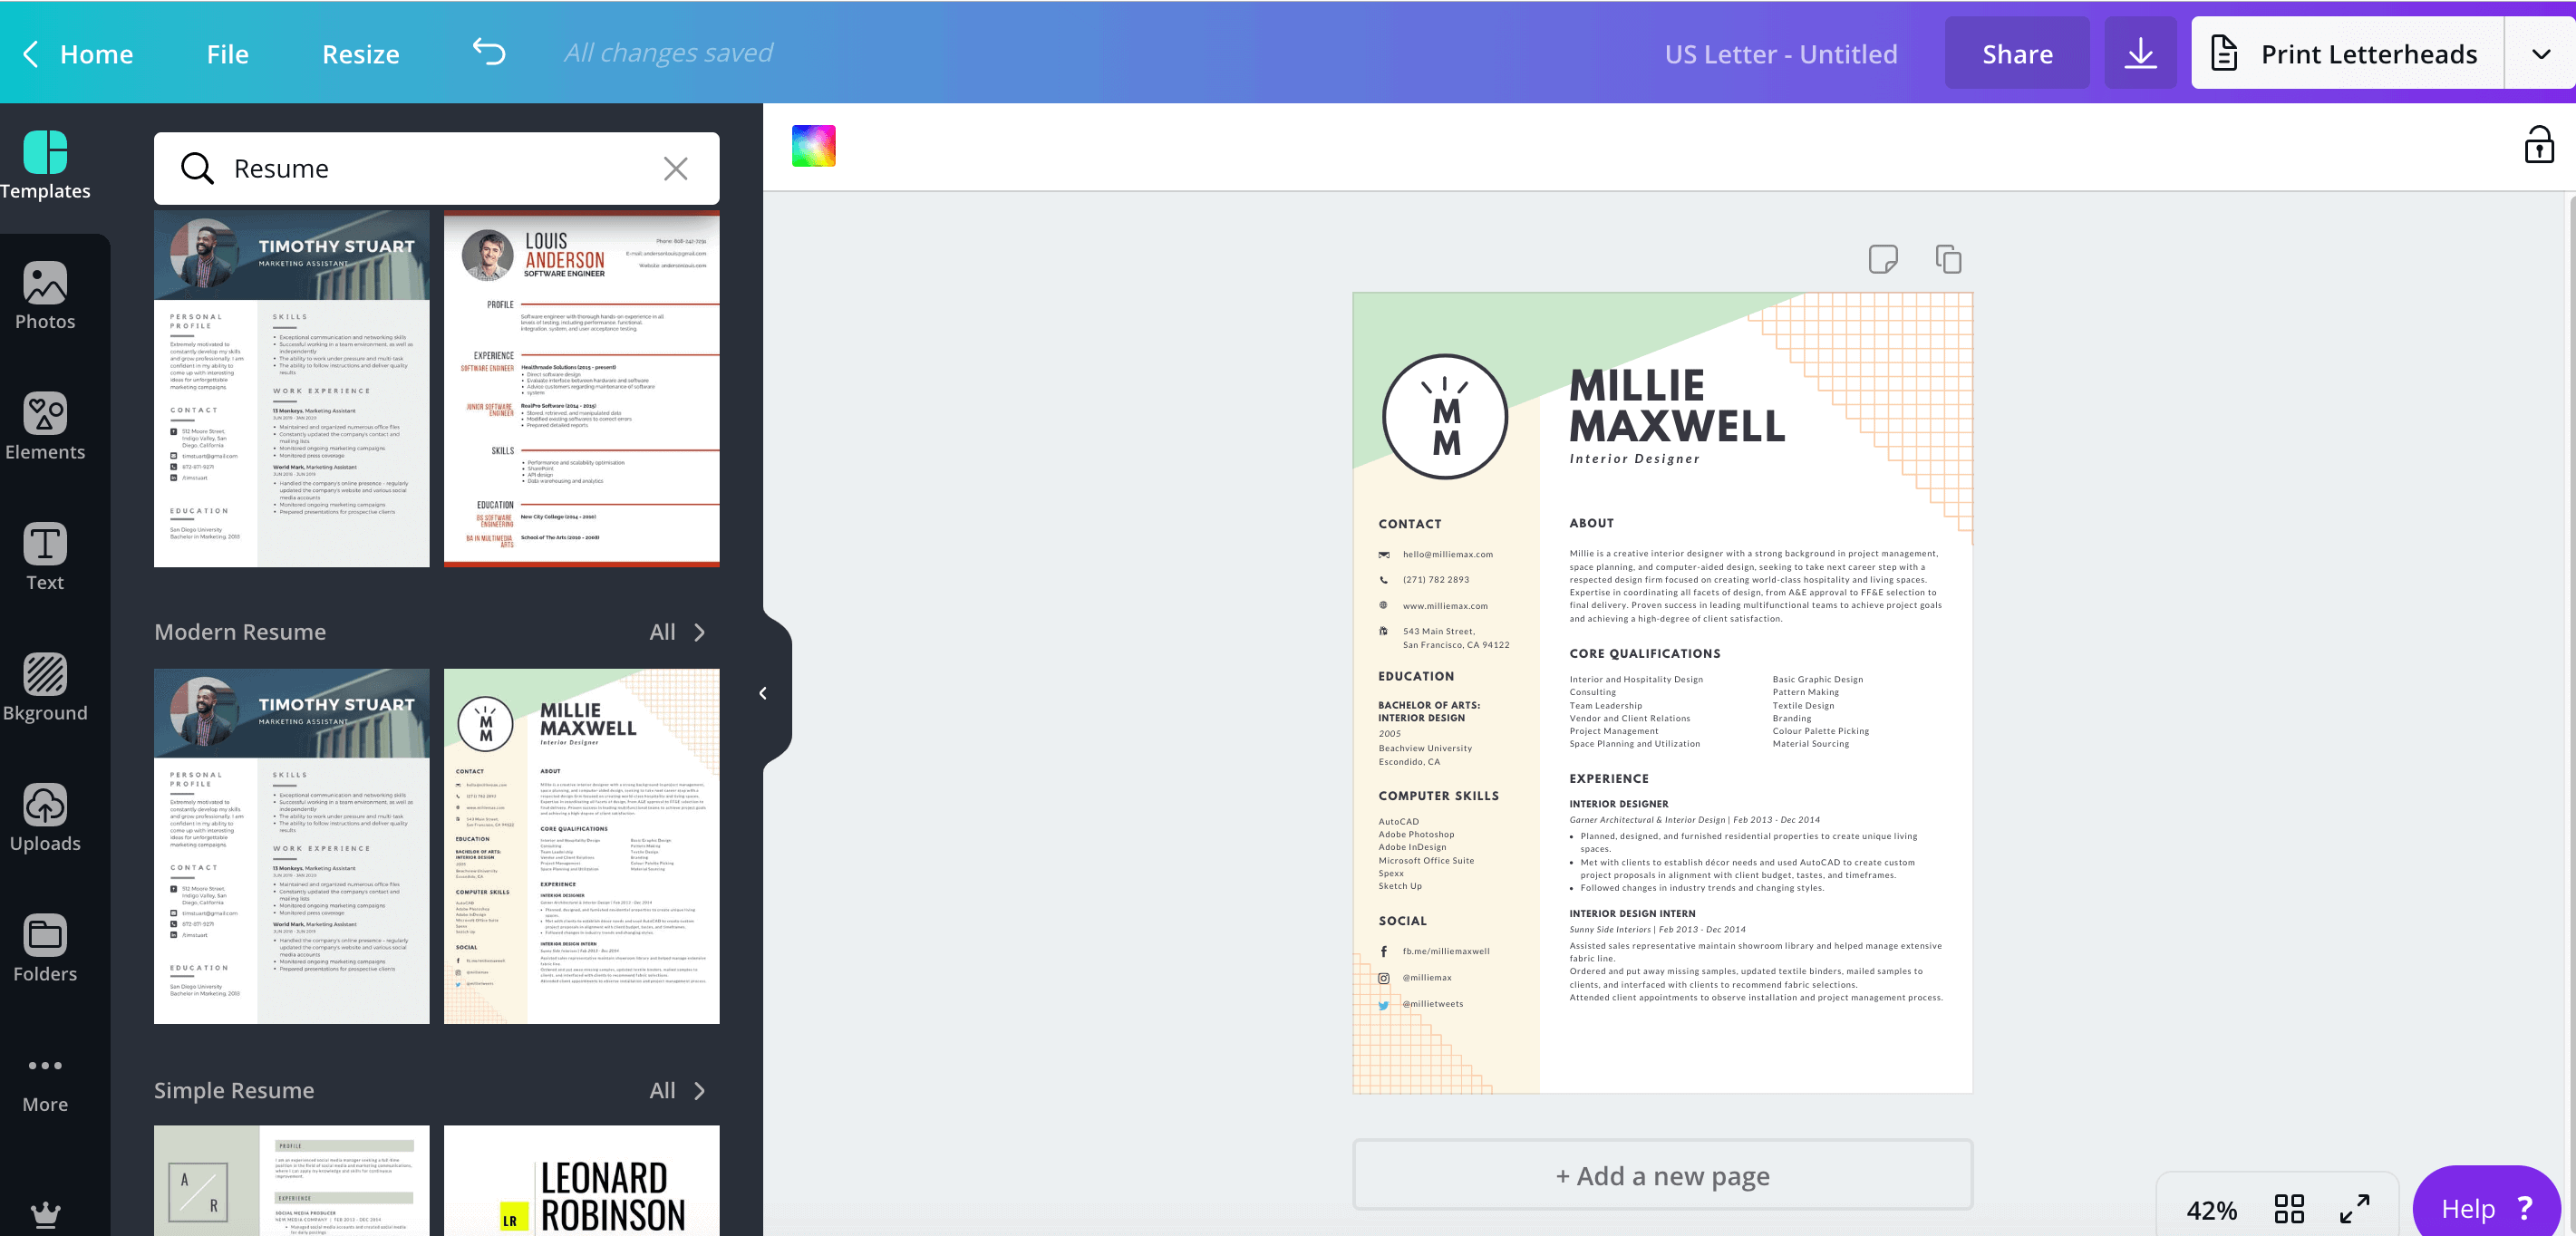 Resume templates found on Canva